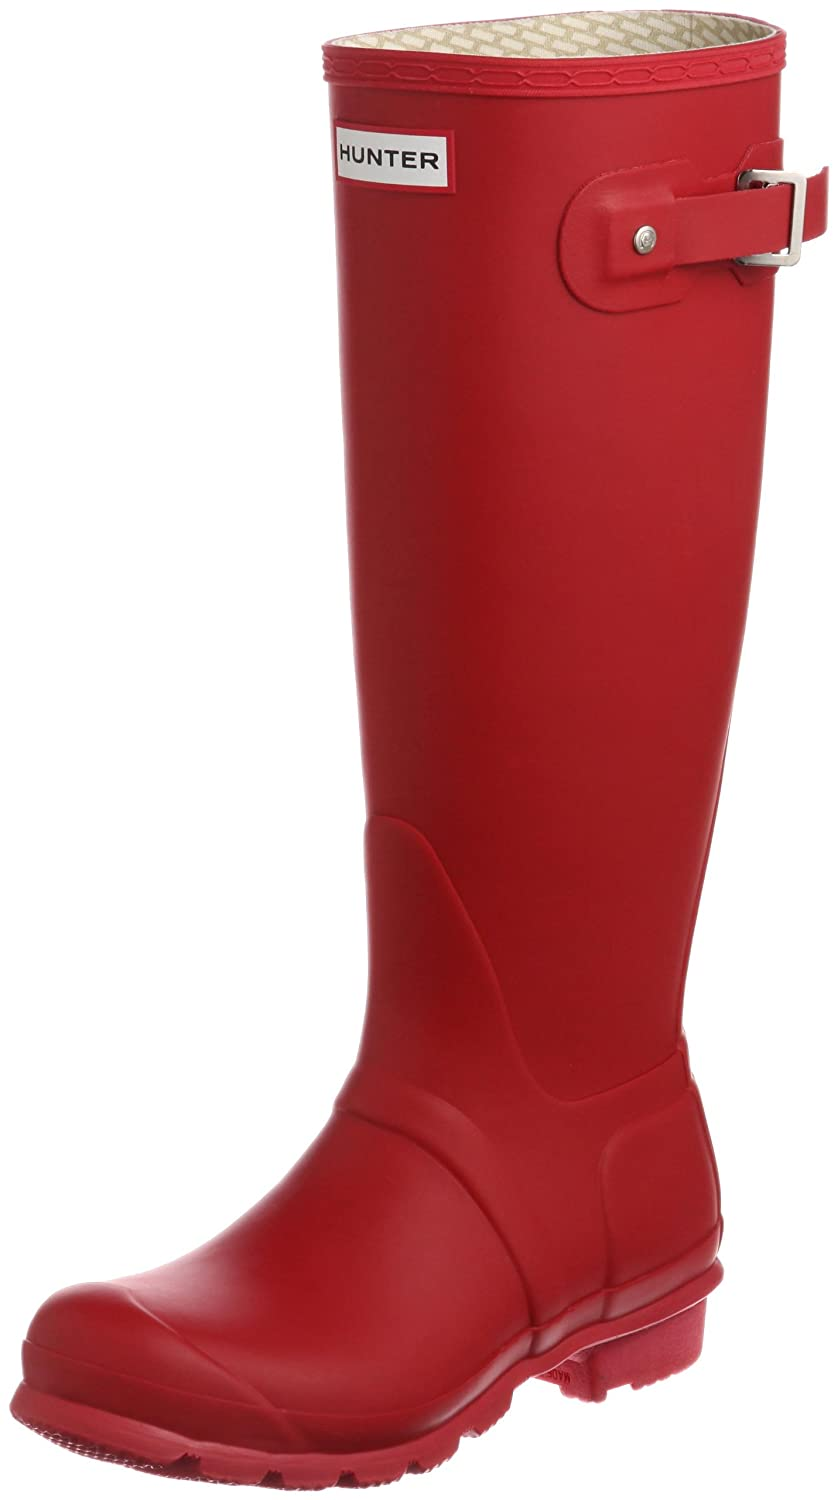 Hunter Women's Original Tall Rain Boot B07956T14L 6 B(M) US|Red